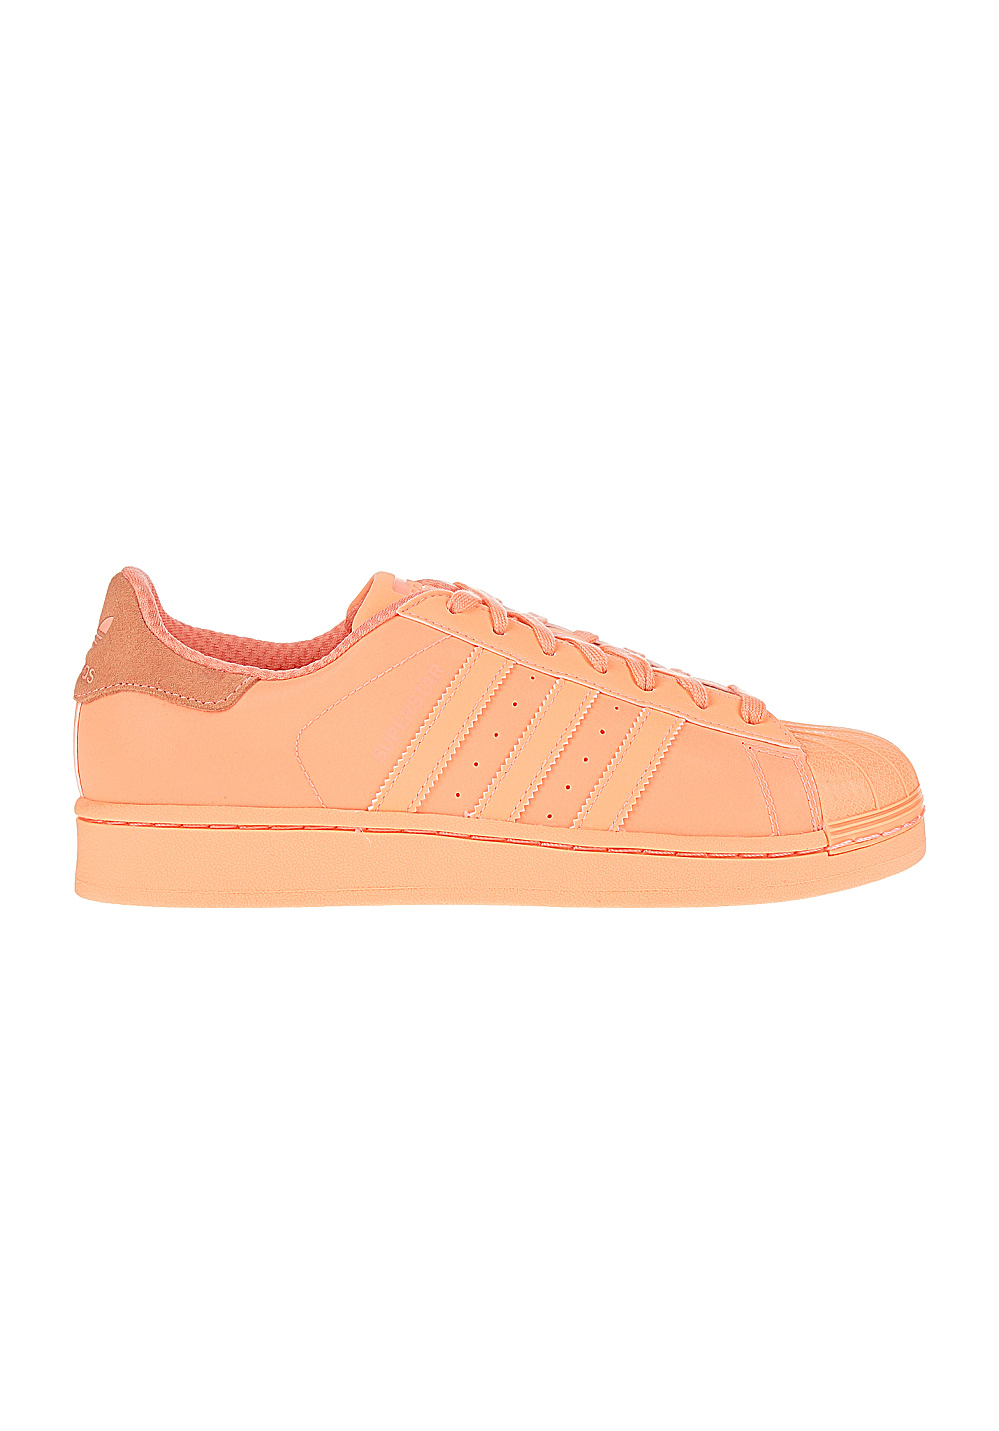 adidas Superstar Adicolor Reflective shoes sunglow Stylefile